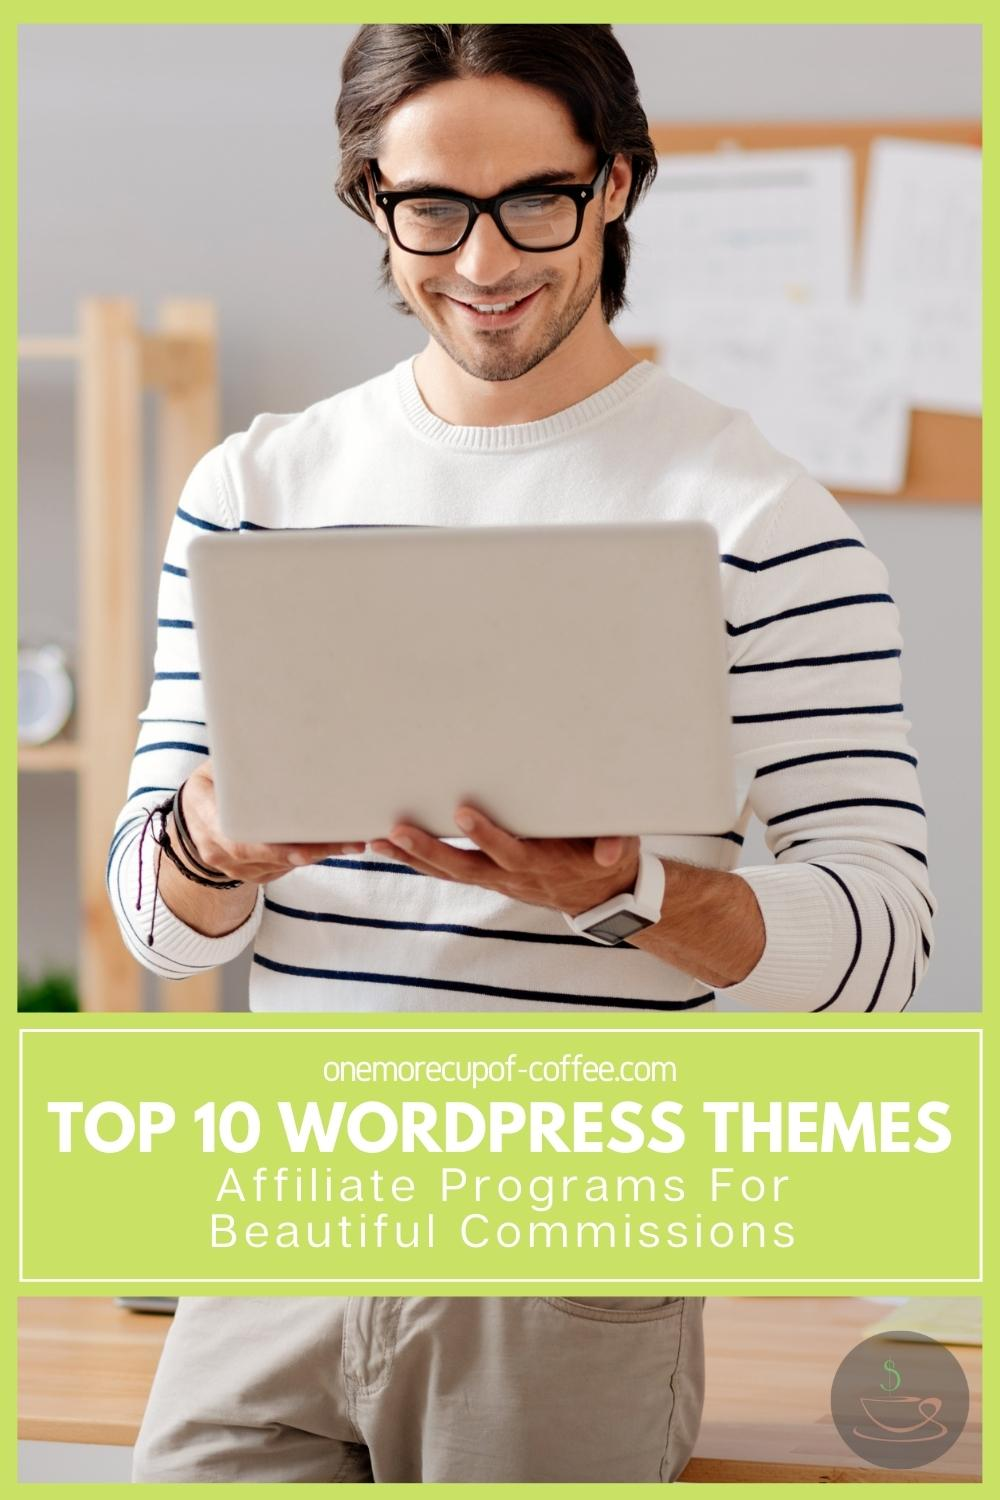 """smiling long-haired man in white sweater with black stripes, black-rimmed eyeglasses, holding a laptop; with text overlay """"Top 10 WordPress Themes Affiliate Programs For Beautiful Commissions"""""""